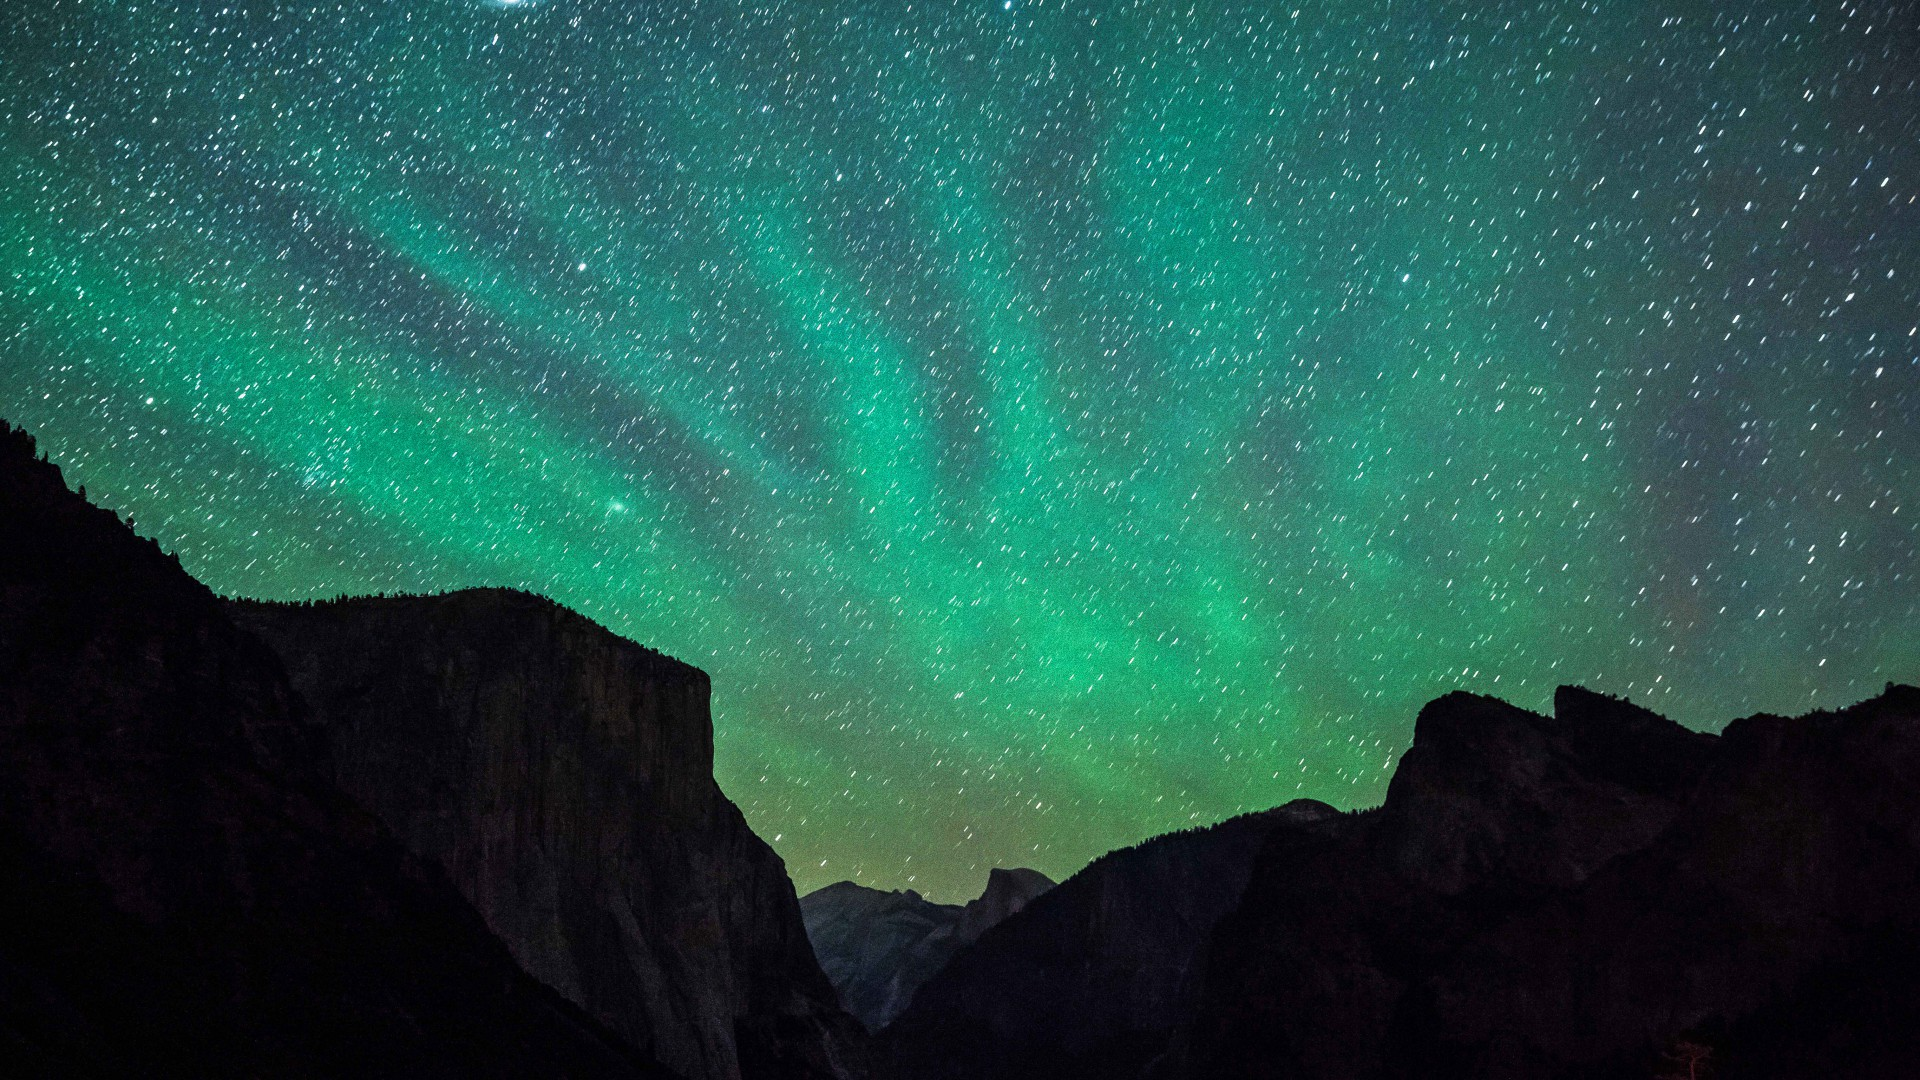 Yosemite, 5k wallpapers, milky way, stars, forest, OSX, apple, mountains